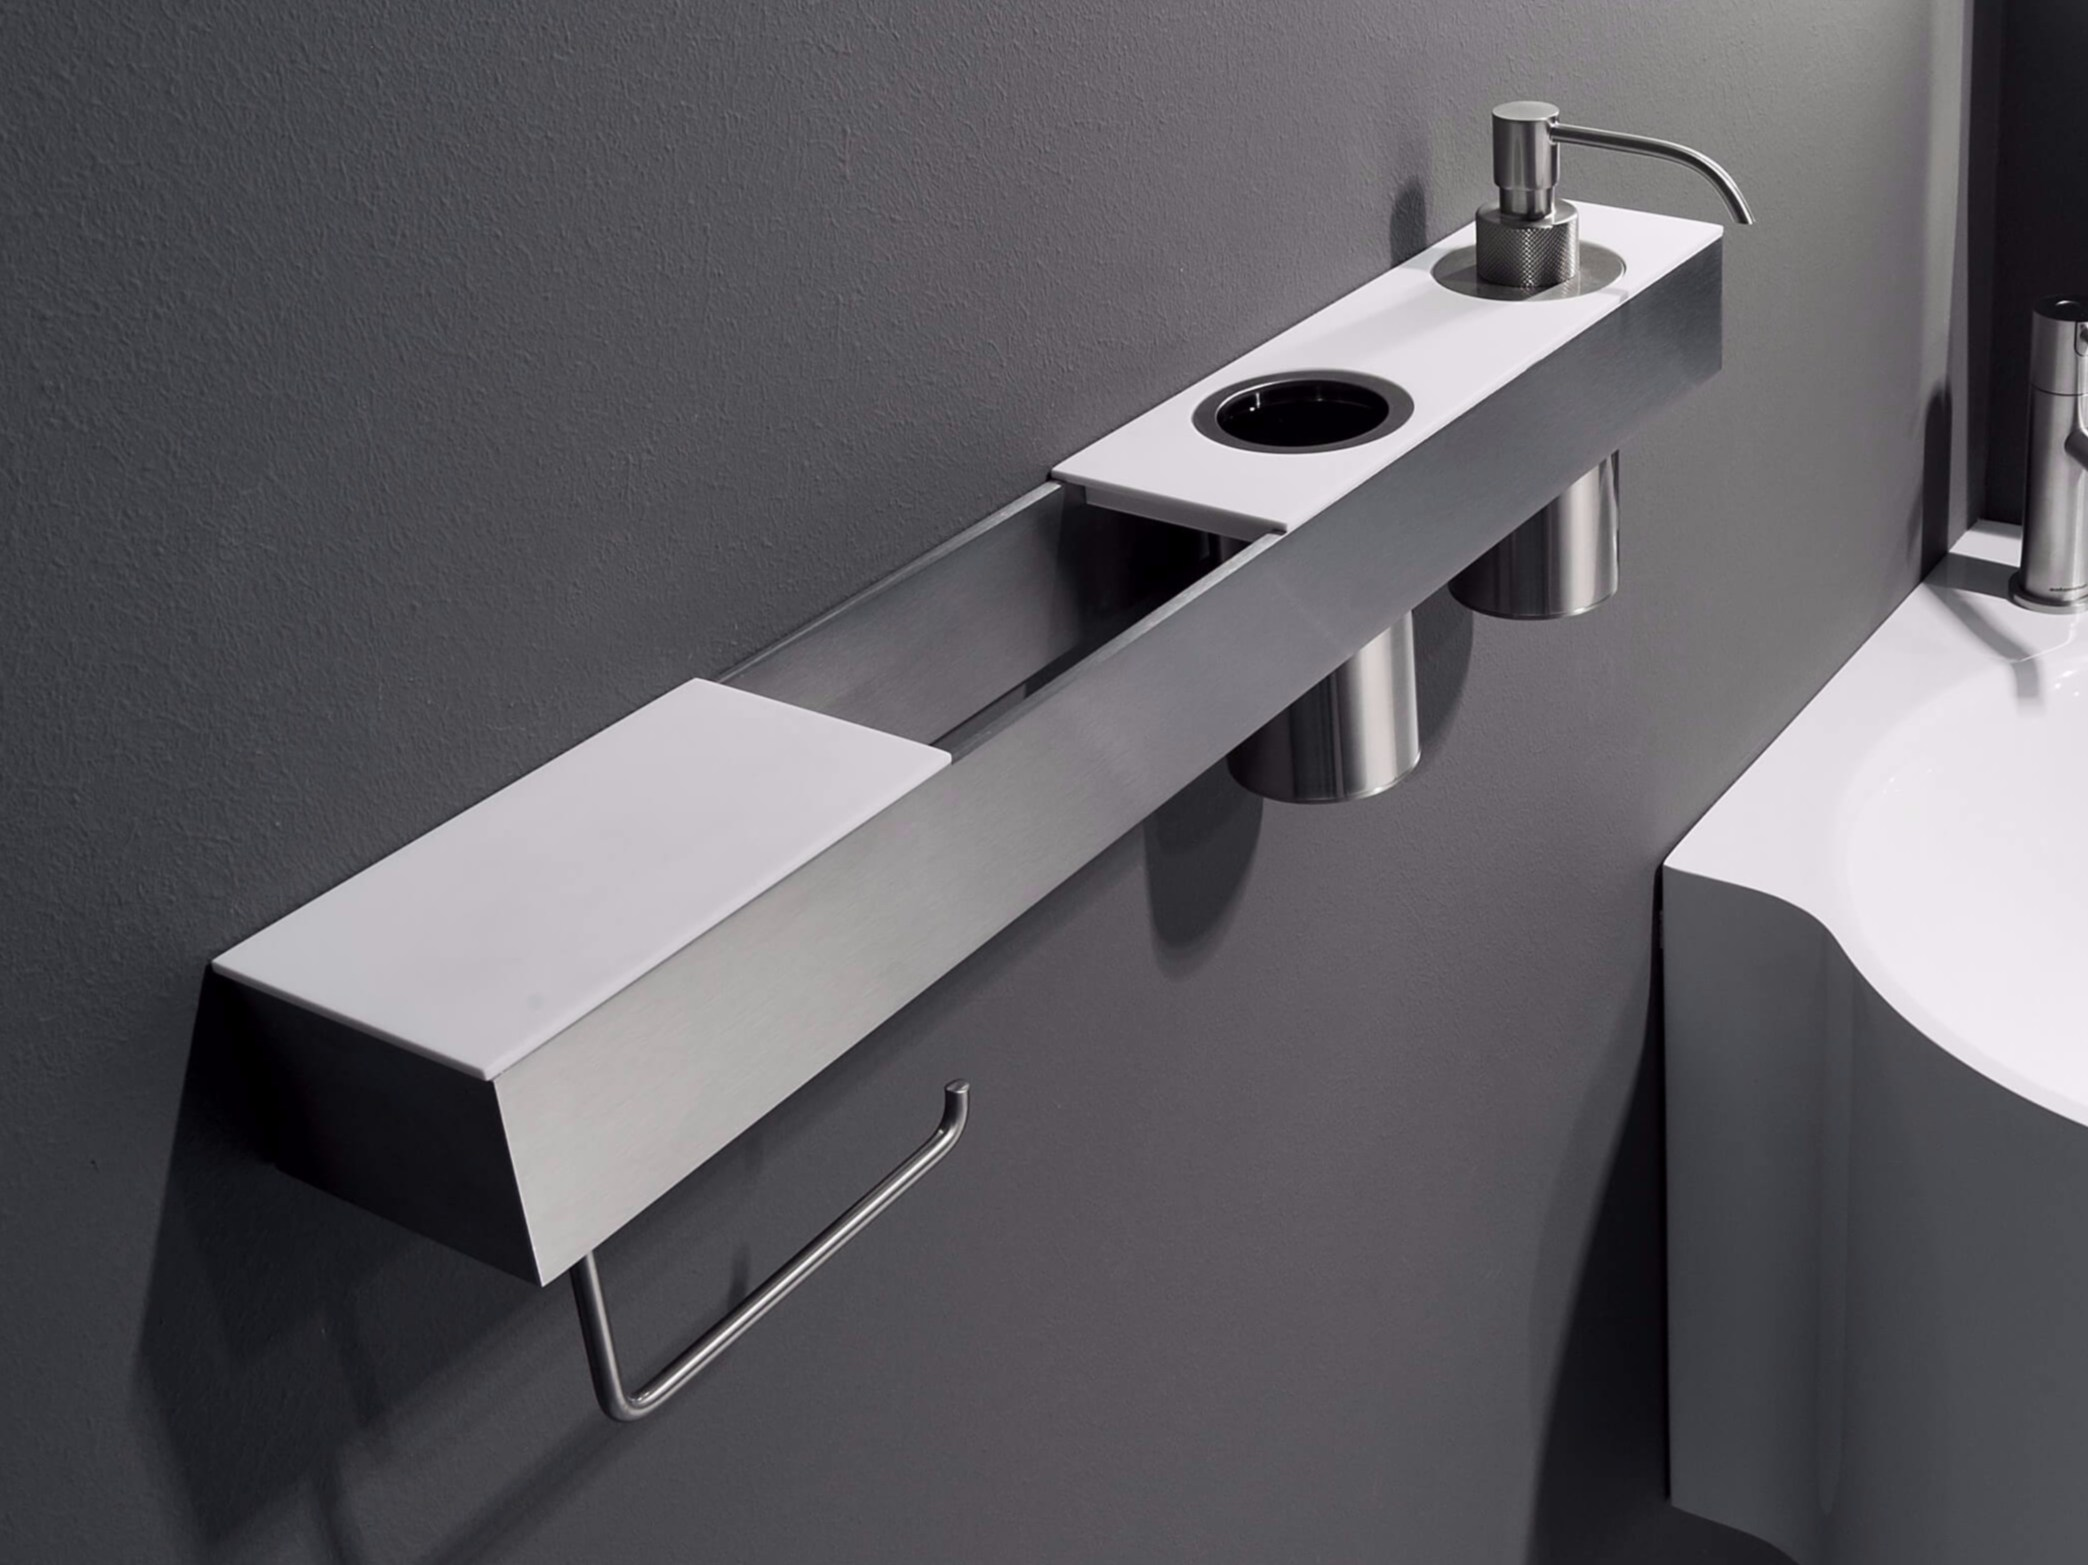 Mensola bagno accessoriata play by antonio lupi design for Design accessori bagno